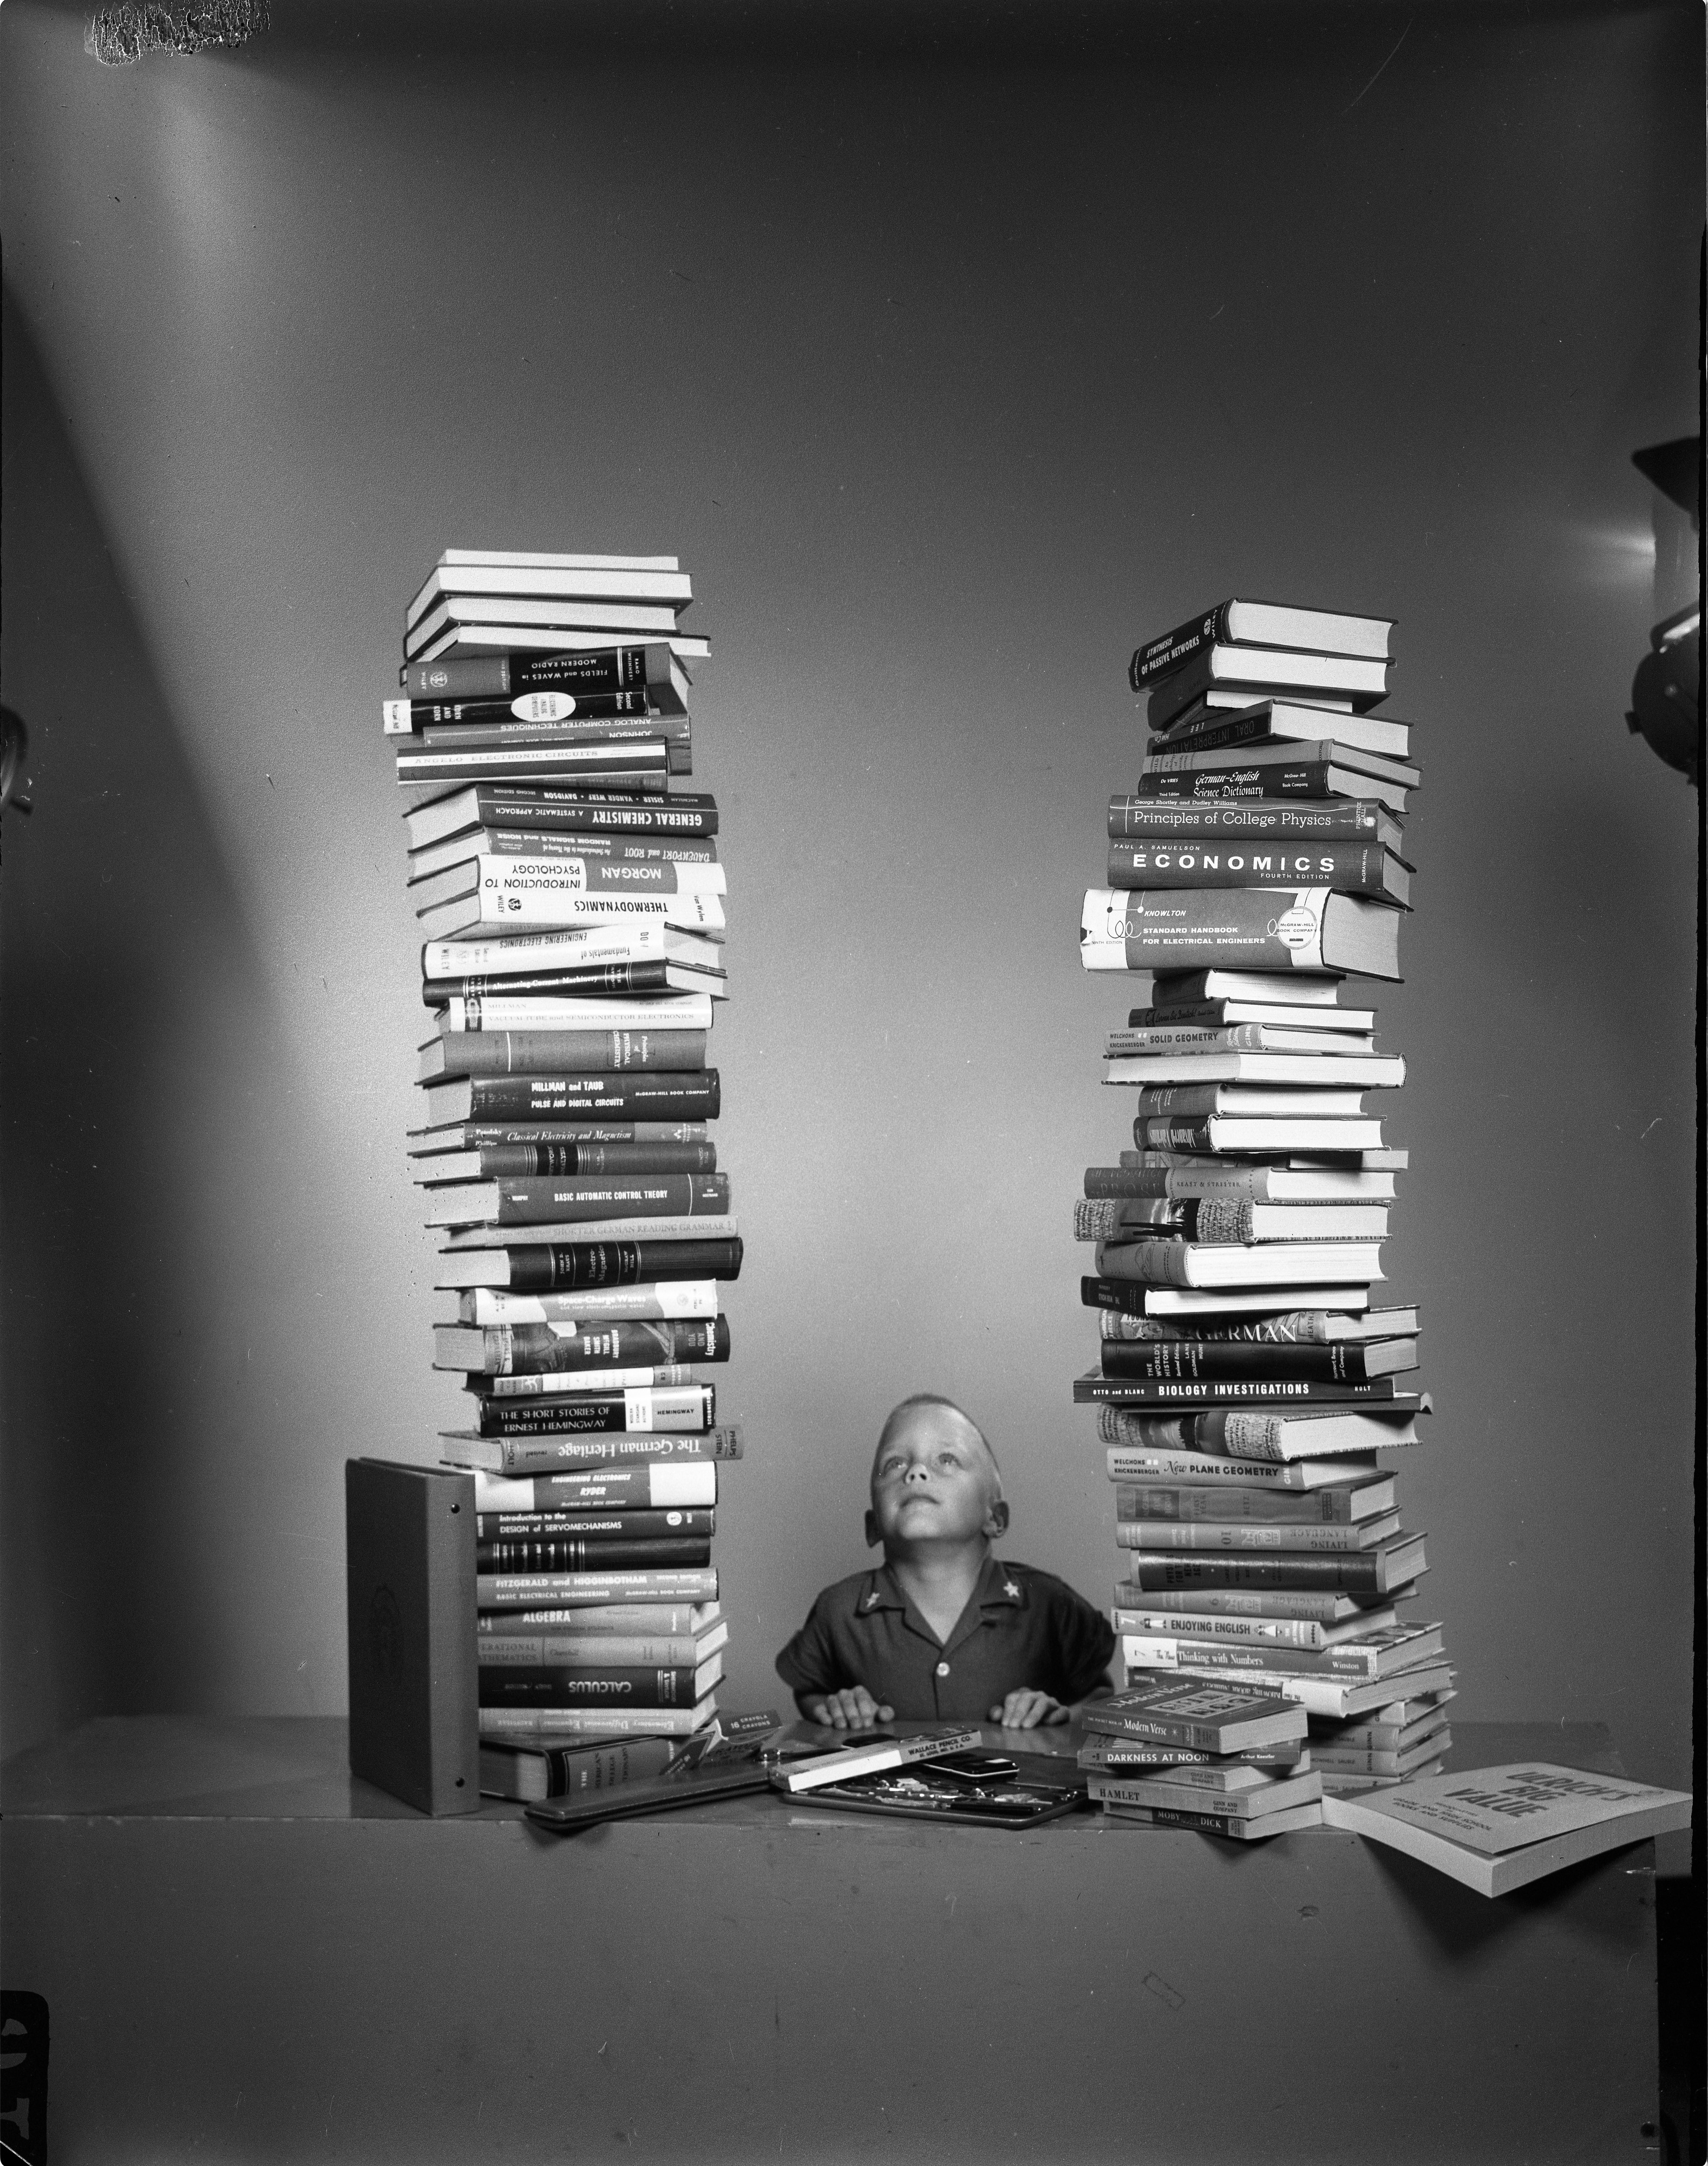 David DeLong Looks At Stack Of Textbooks, September 9, 1959 image